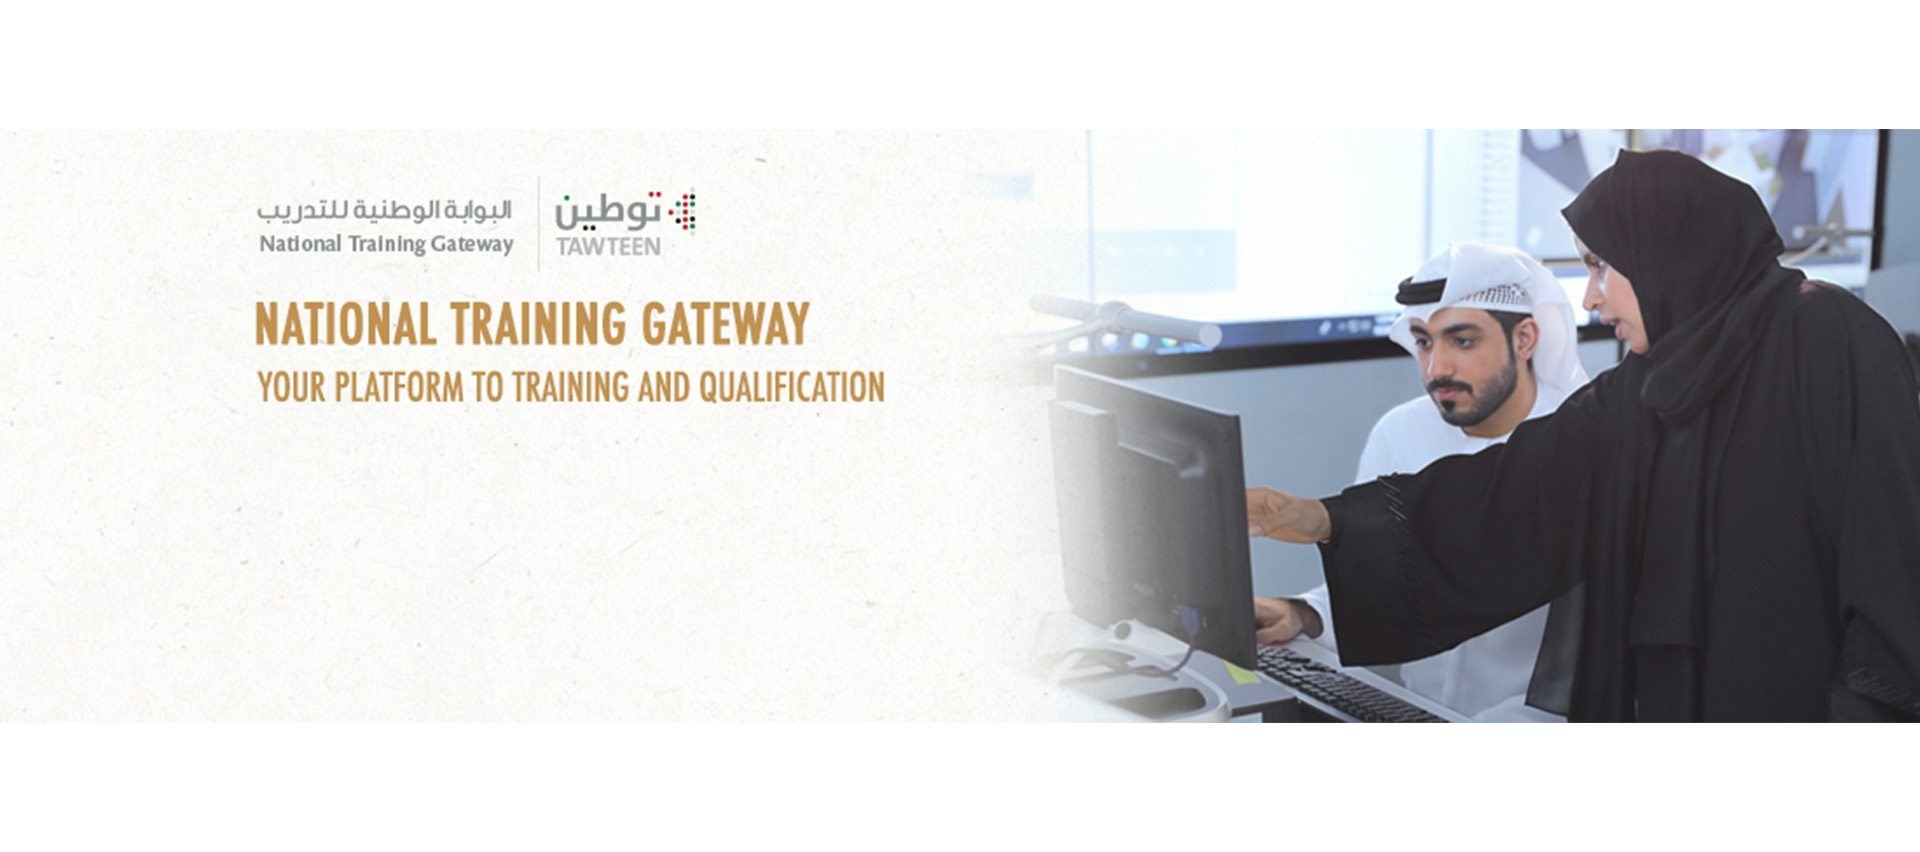 THE NATIONAL TRAINING PORTAL